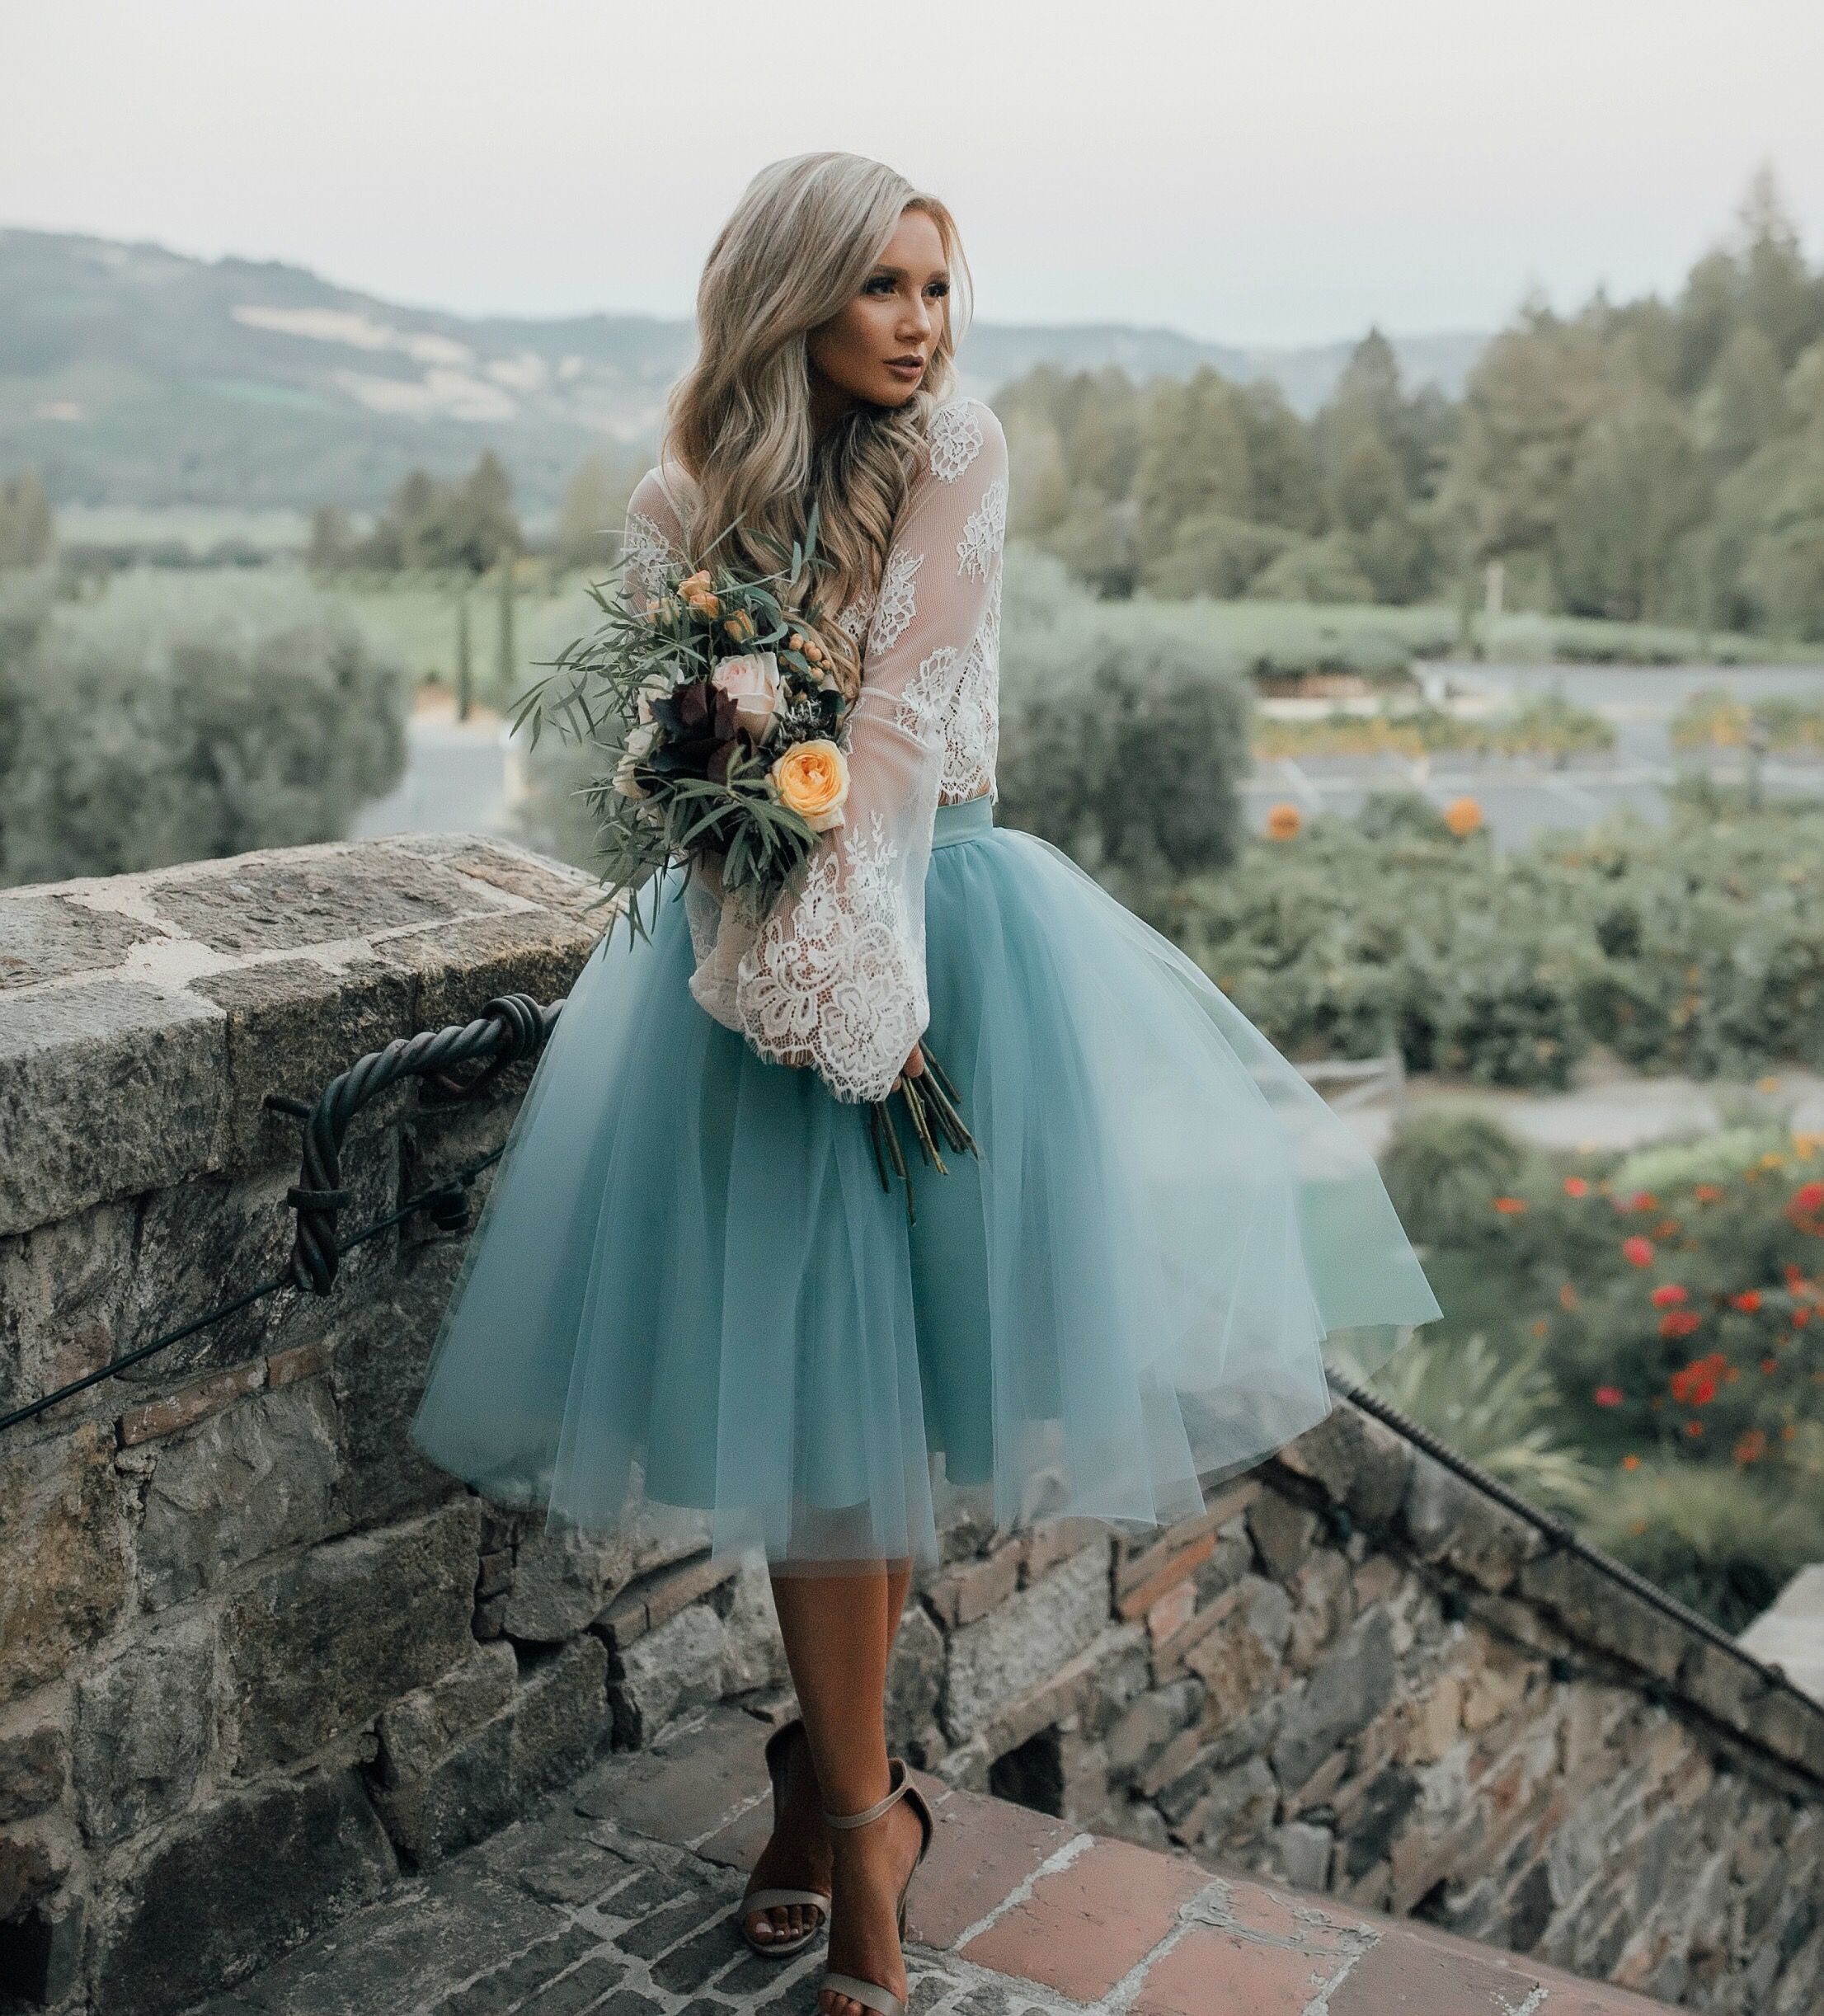 20 Ideas For Tulle Skirt That Will Blow Your Mind Mini Prom Dresses Prom Dresses Long With Sleeves Long Sleeve Homecoming Dresses [ 2445 x 2212 Pixel ]